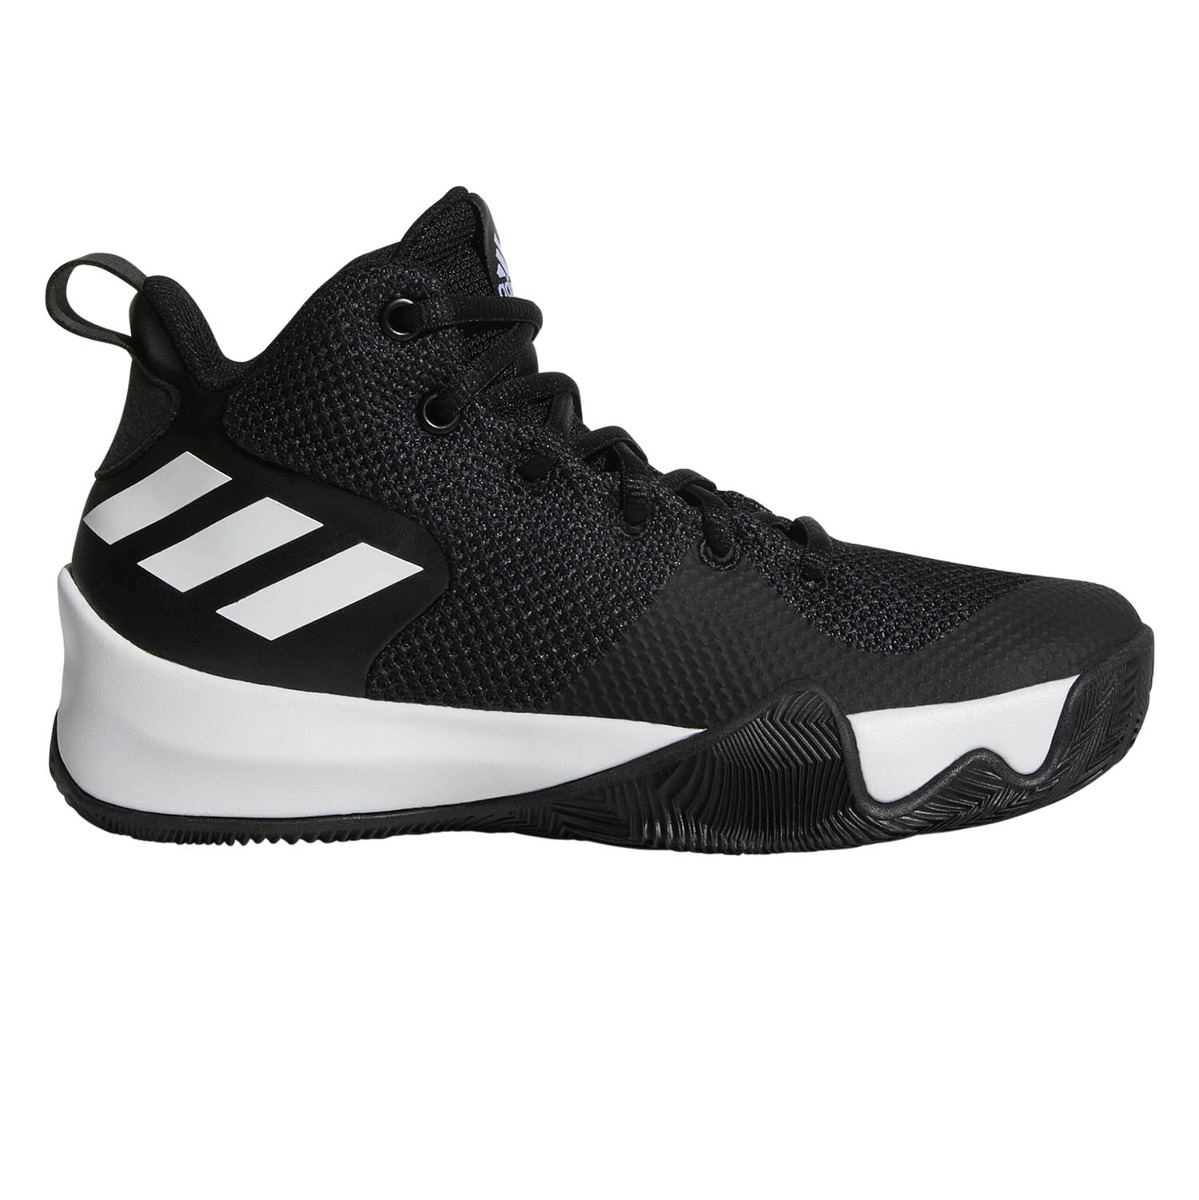 big sale d6727 4745e zapatillas adidas explosive flash-db1574- adidas performance. Cargando zoom.